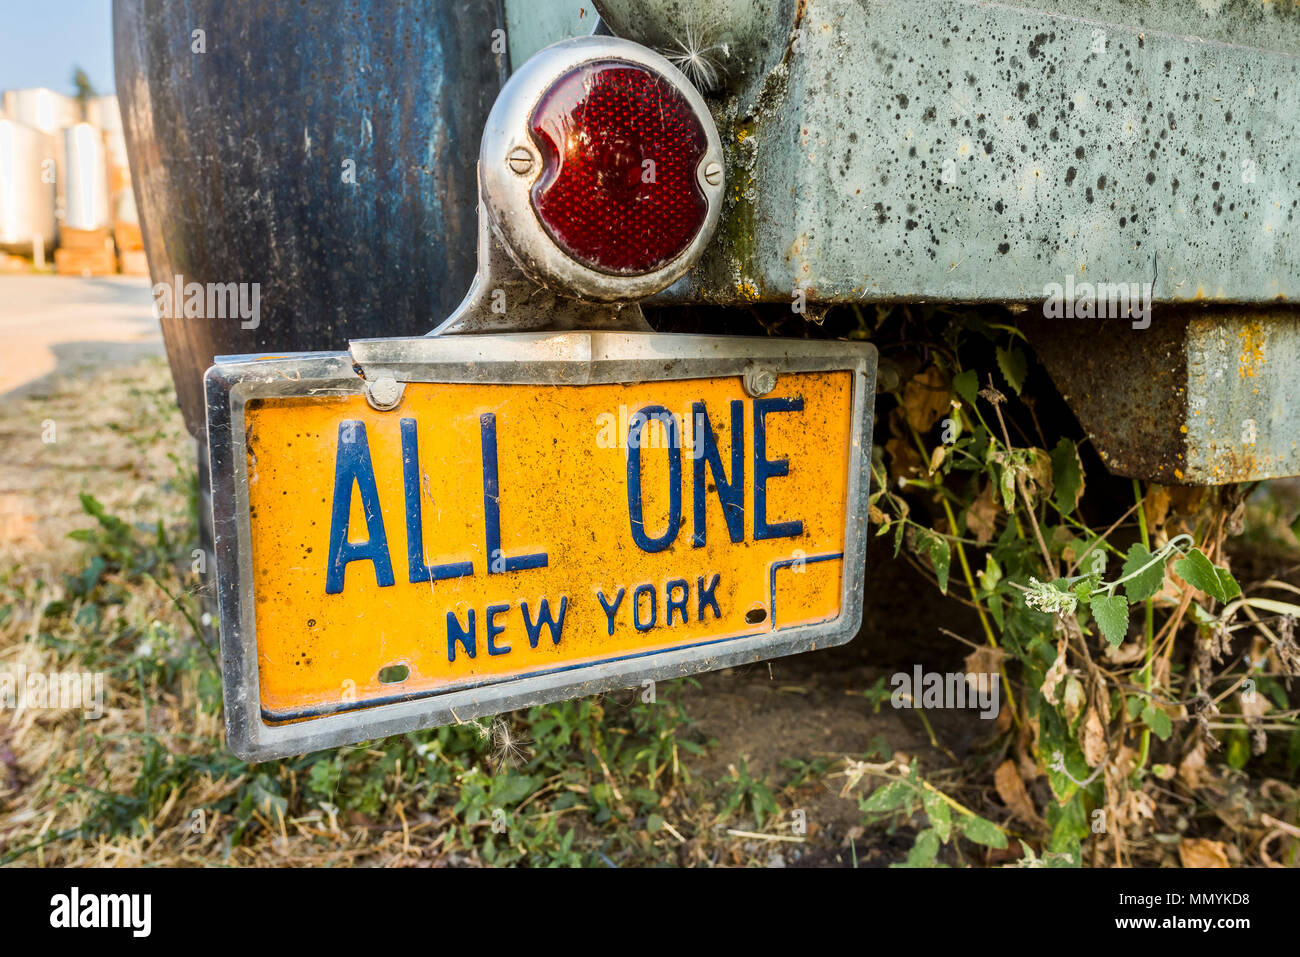 All One, New York car licence plate - Stock Image